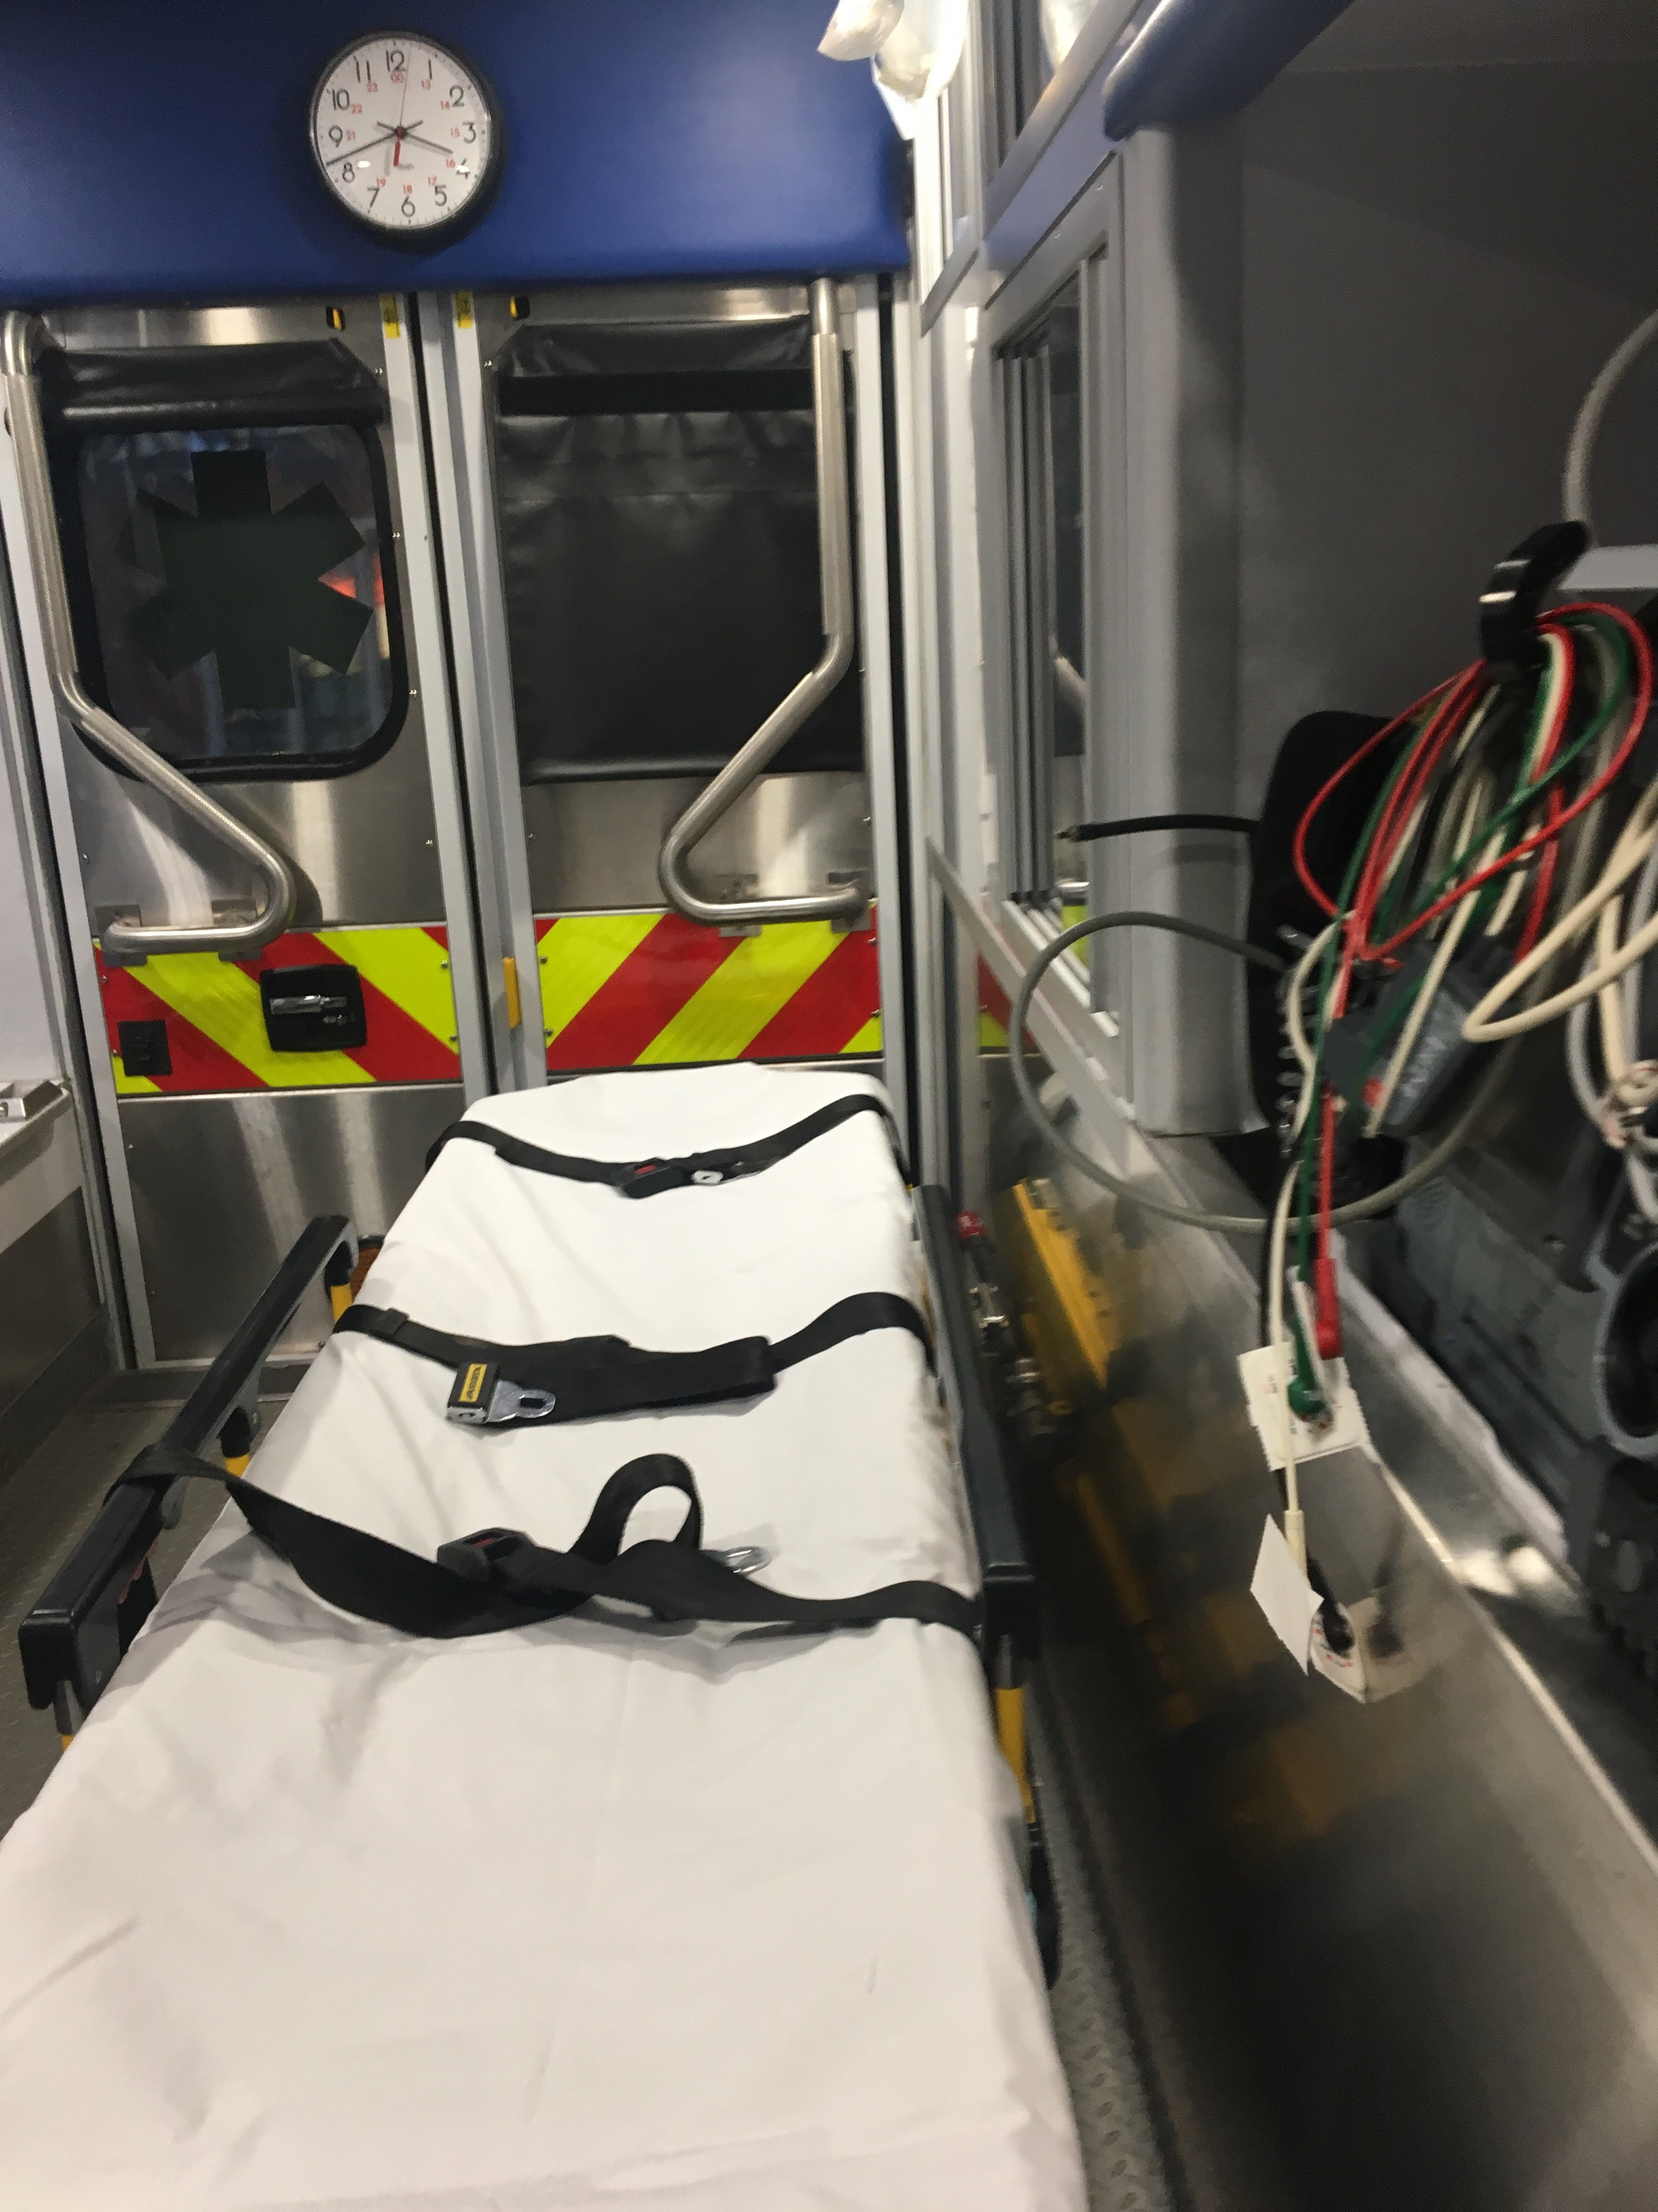 Immersion d'un ambulancier français au Fire Département de Chicago - EMS